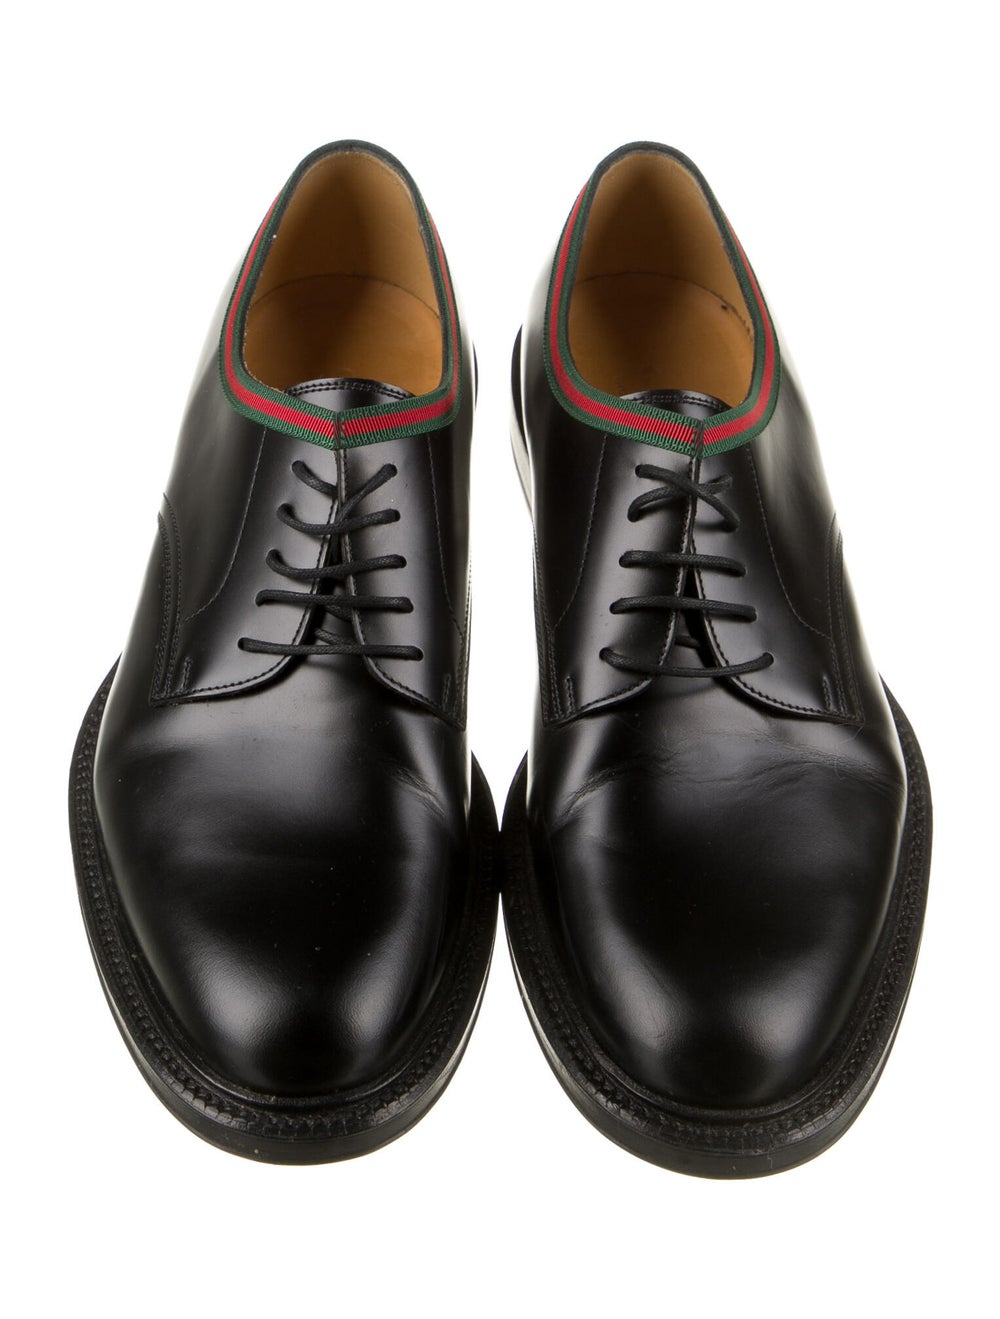 Gucci Web Accent Leather Derby Shoes Black - image 3